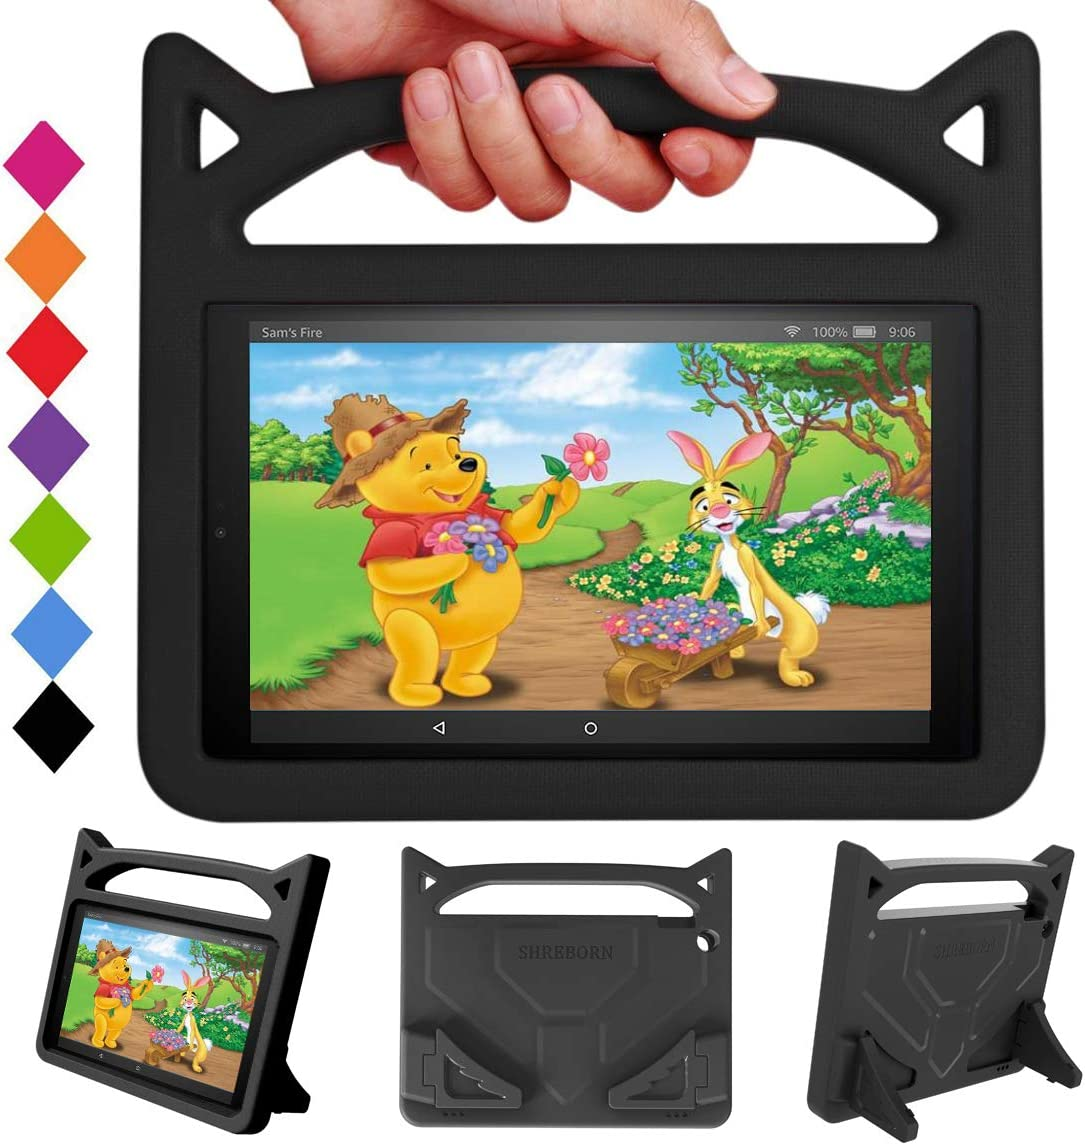 New HD 10 Tablet Kids Case - SHERBORN Lightweight Shockproof with Stand Kid-Proof Cover Cat Ear Handle Kids Case for All New HD 10 Tablet(9th/7th/5th Generation, 2019/2017/2015 Release) (Black)